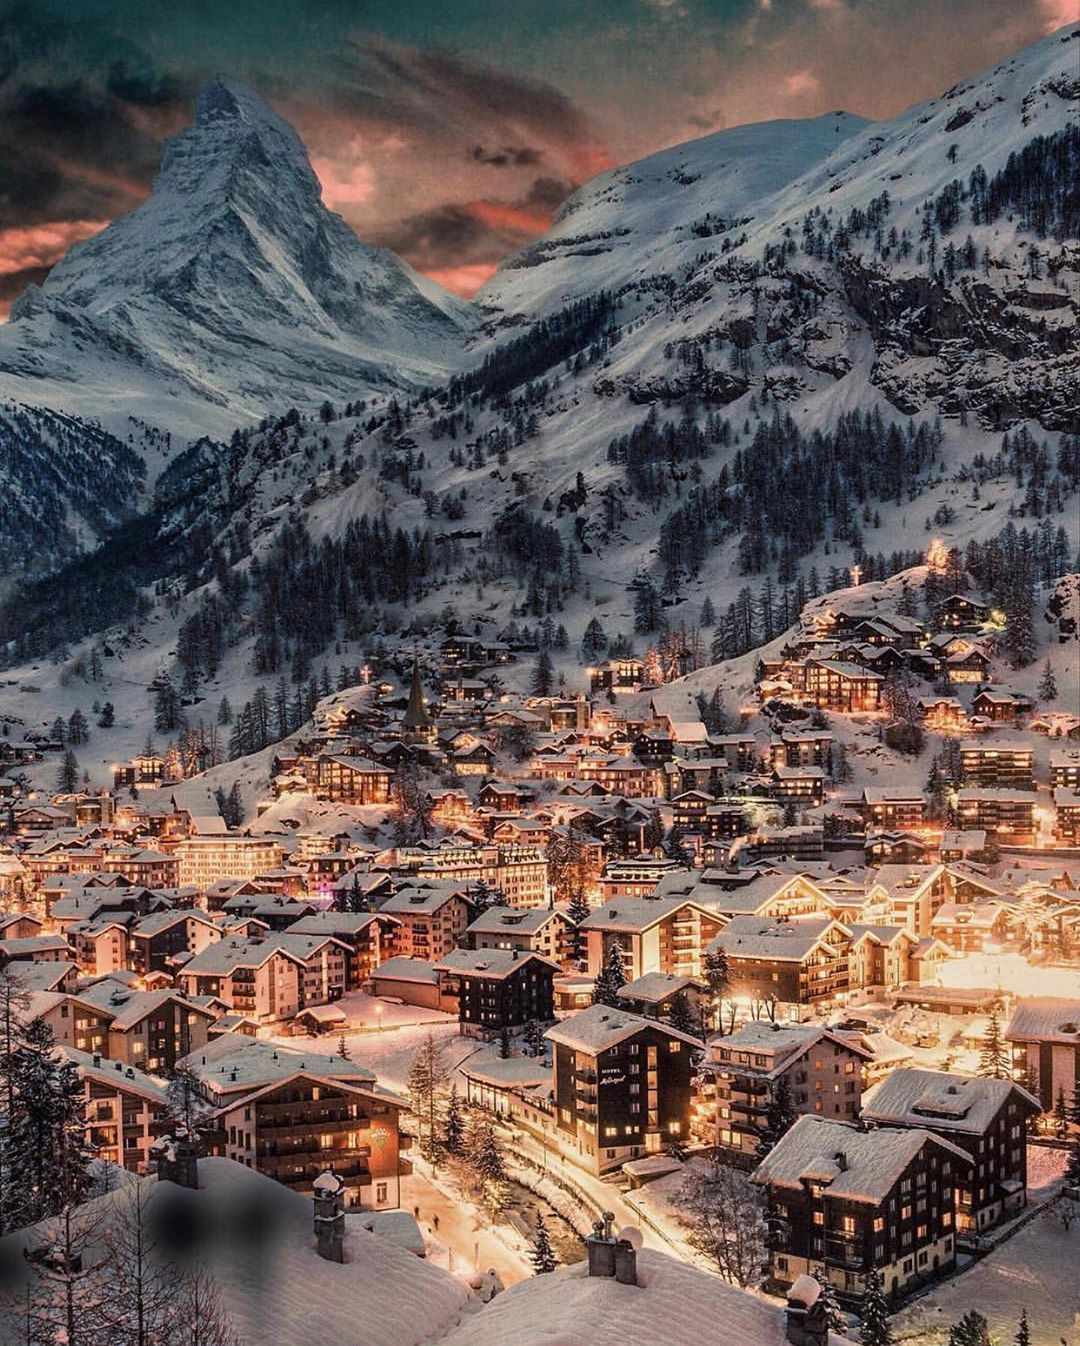 """Photo of TRAVELLING THROUGH THE WORLD © on Instagram: """"Winter dreams ☃️✨😍 Courtesy of @golden_heart  Founders: @takemyhearteverywhere 📍Zermatt, Switzerland 🇨🇭 Tag your best travel photos with…"""""""